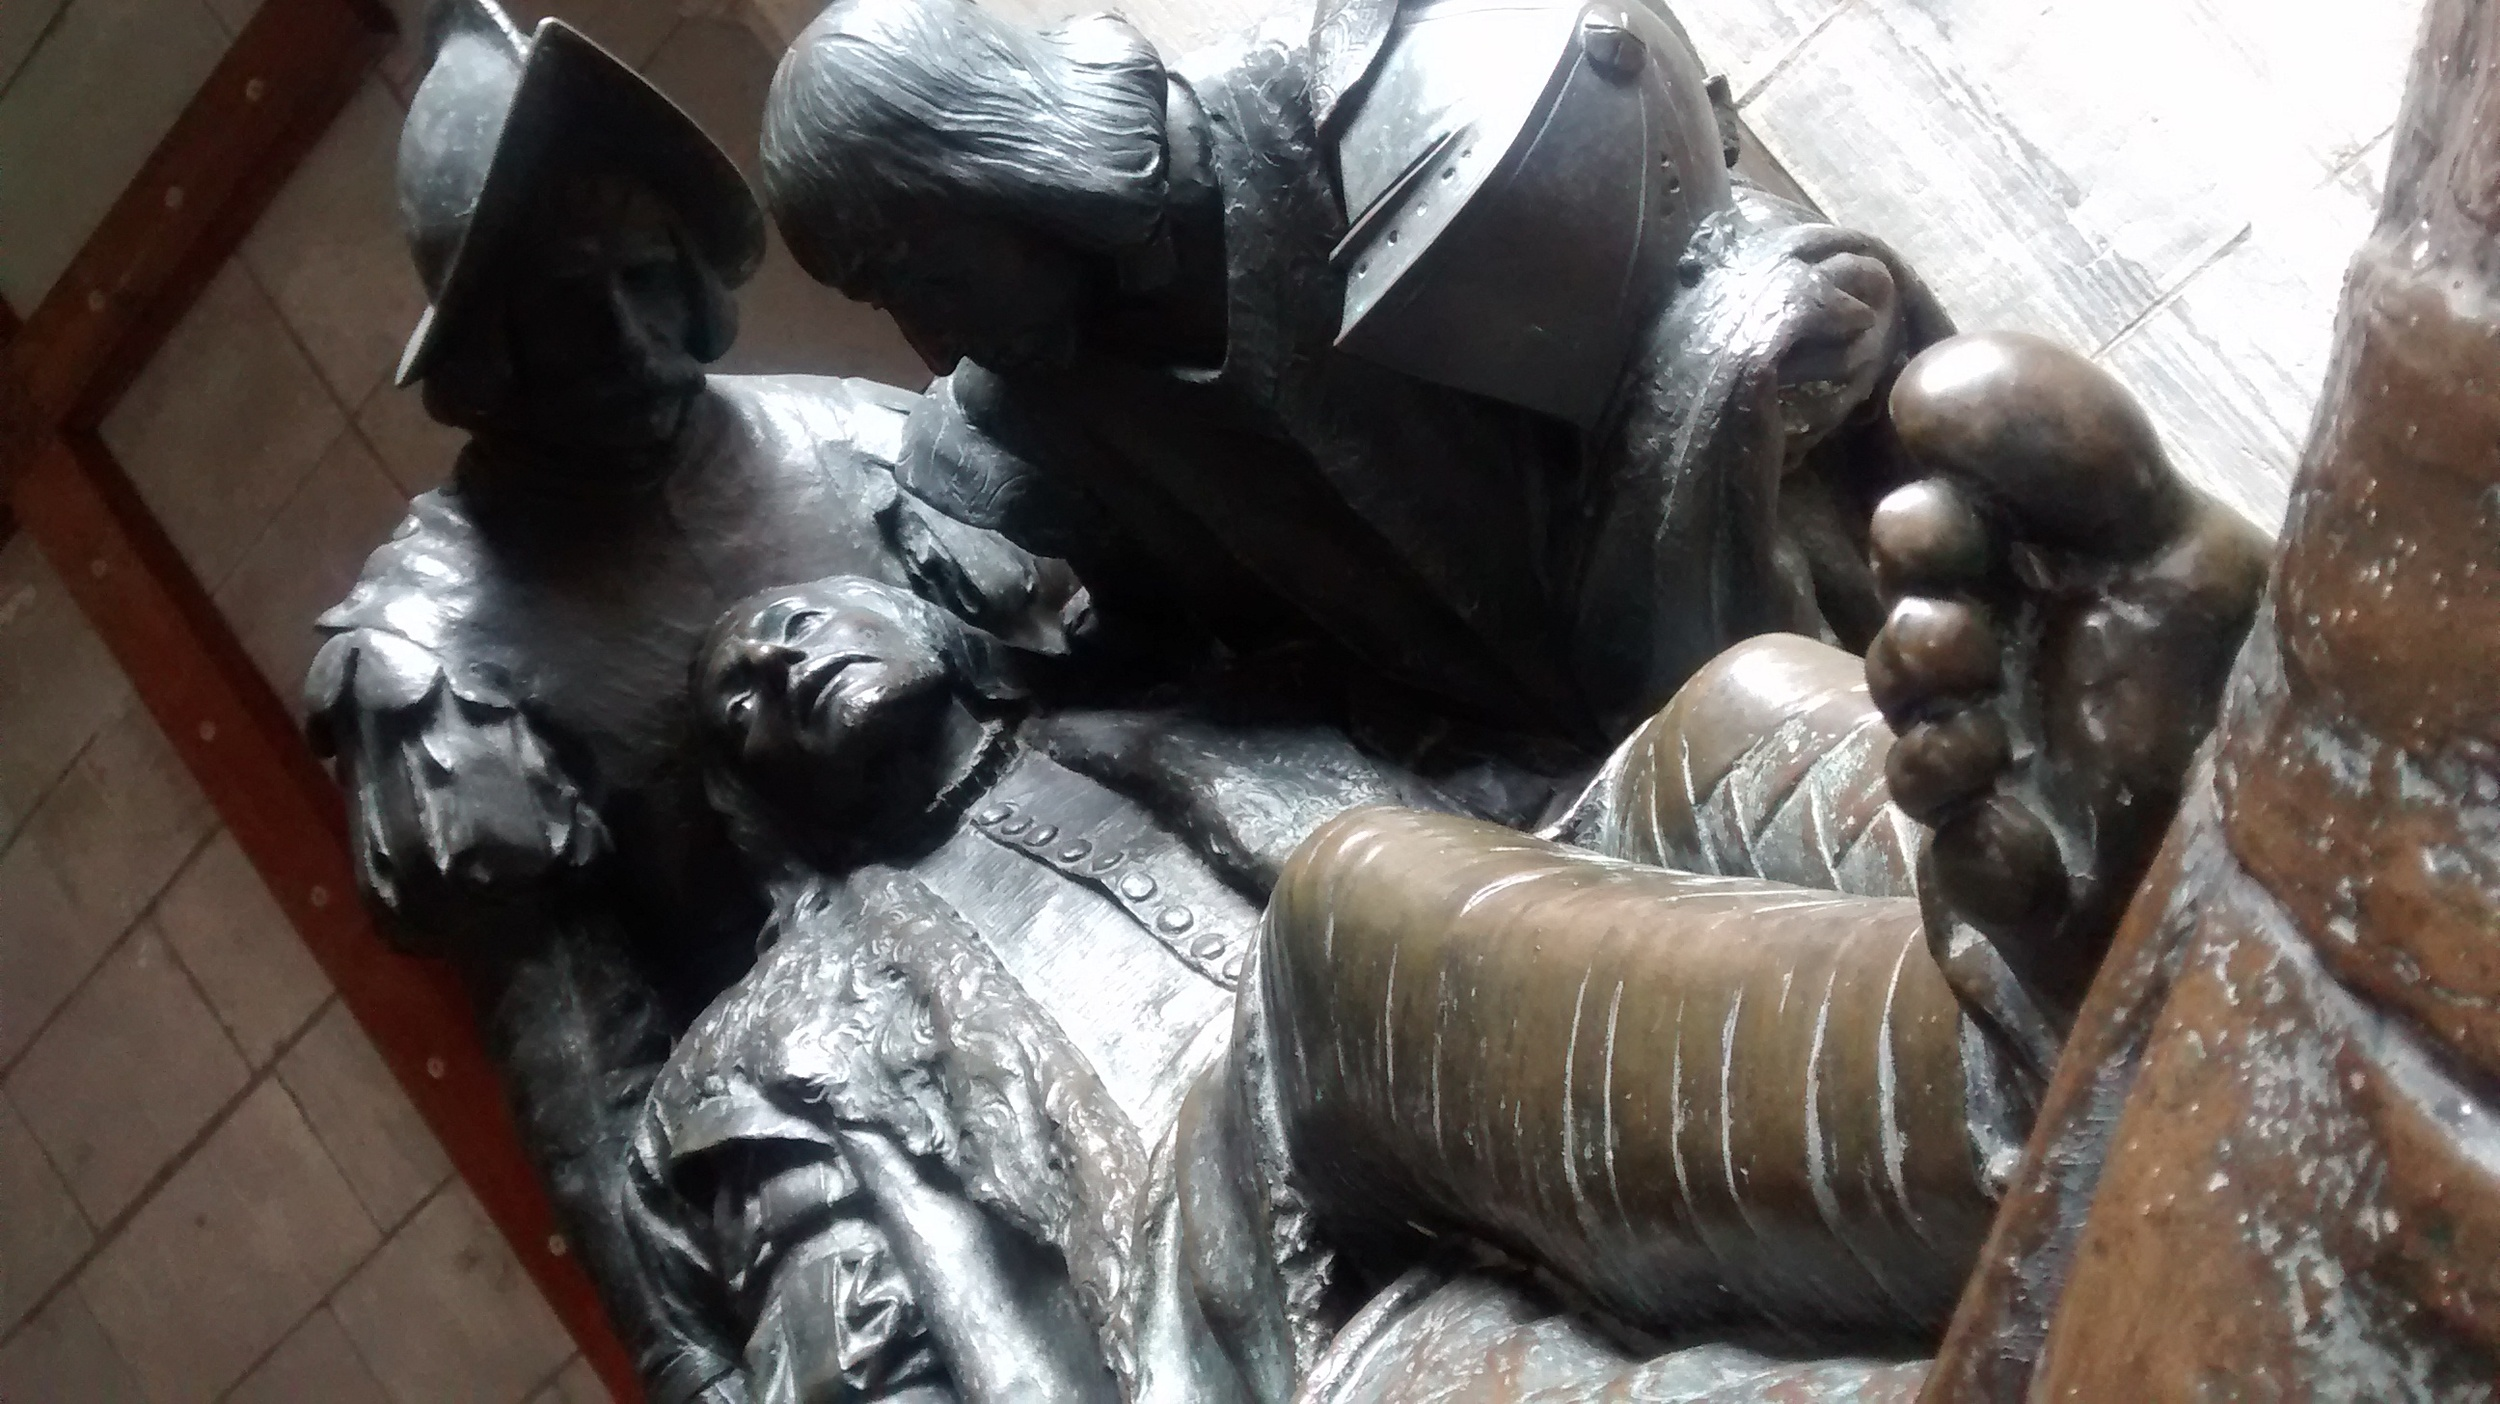 At Loyola castle, Statue of Ignatius after his cannonball wound.